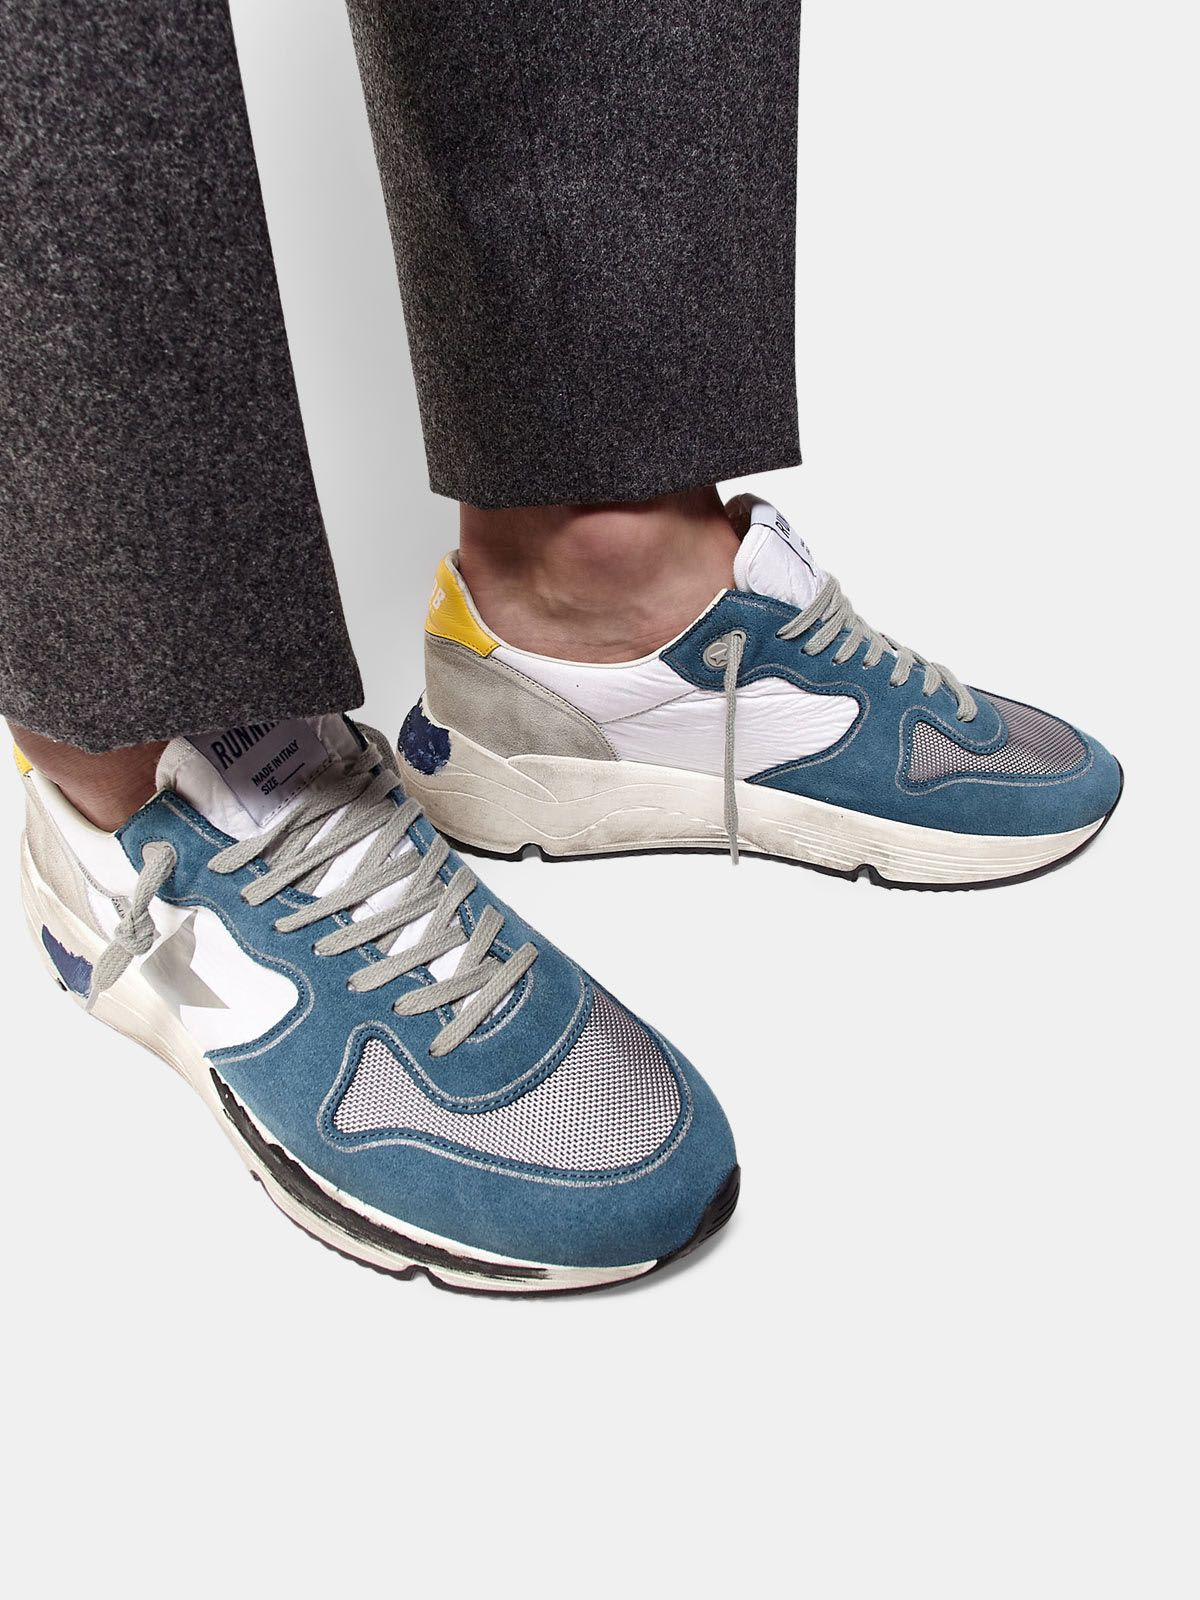 Running Sole sneakers in light blue leather with silver star